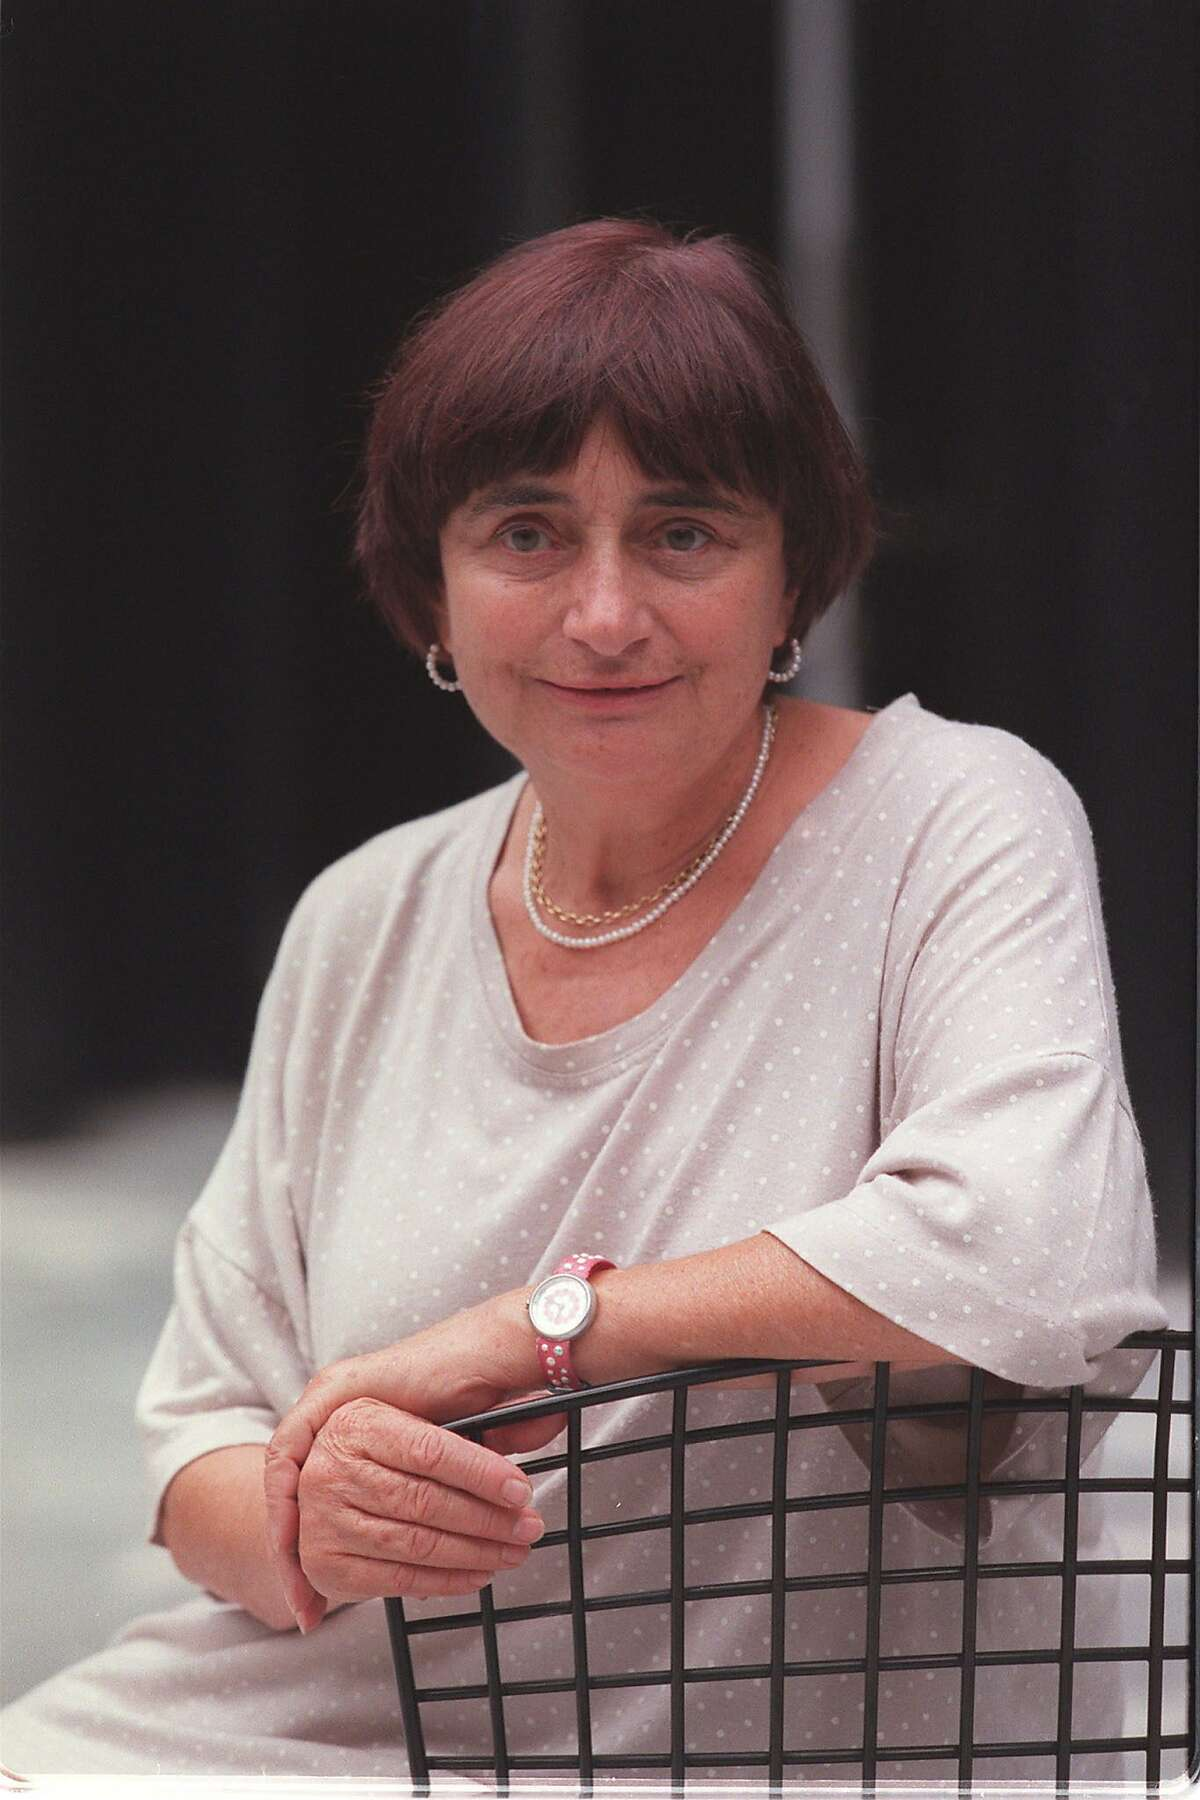 FILE - Agnès Varda, the acclaimed French filmmaker, in New York, Sept. 18, 1997. Varda, an emblematic feminist and cinematic firebrand whose innovations predated the work many other filmmakers in the New Wave movement which she was often identified with, died at home in Paris on March 29, 2019. She was 90. (Sara Krulwich/The New York Times)